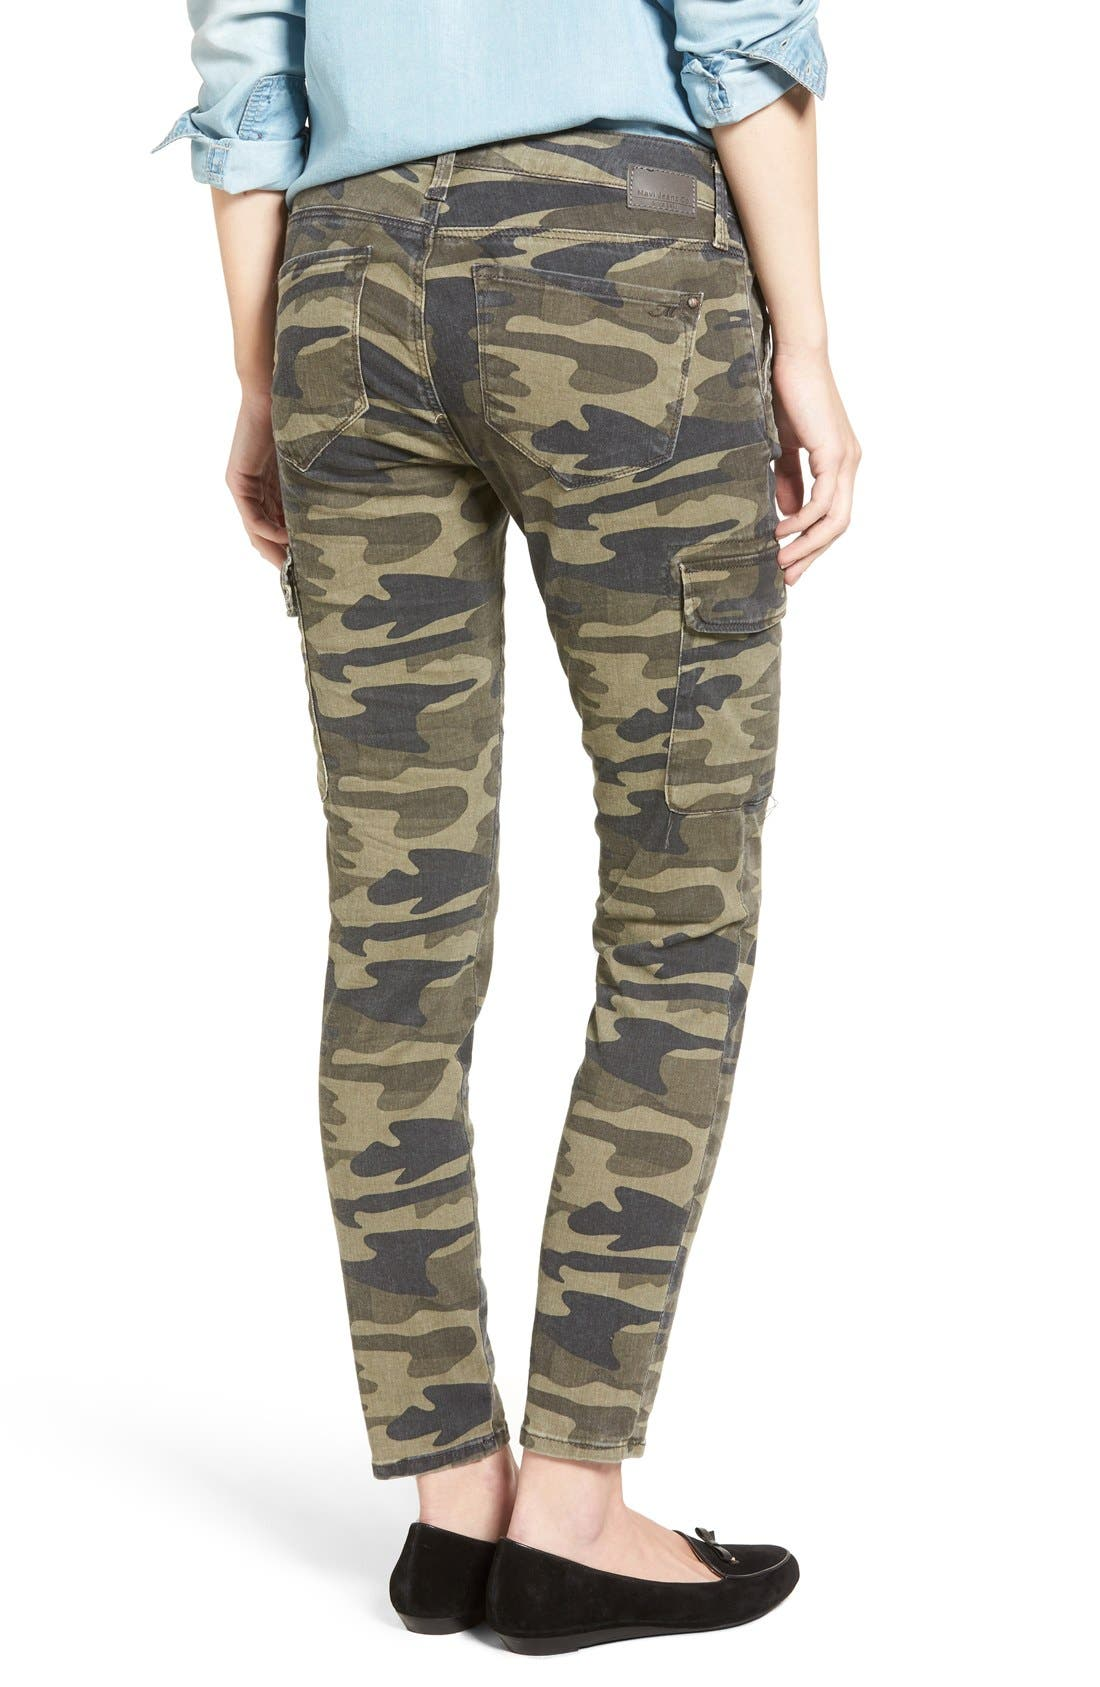 Juliette Camo Print Military Cargo Pants,                             Alternate thumbnail 3, color,                             MILITARY CAMOUFLAGE